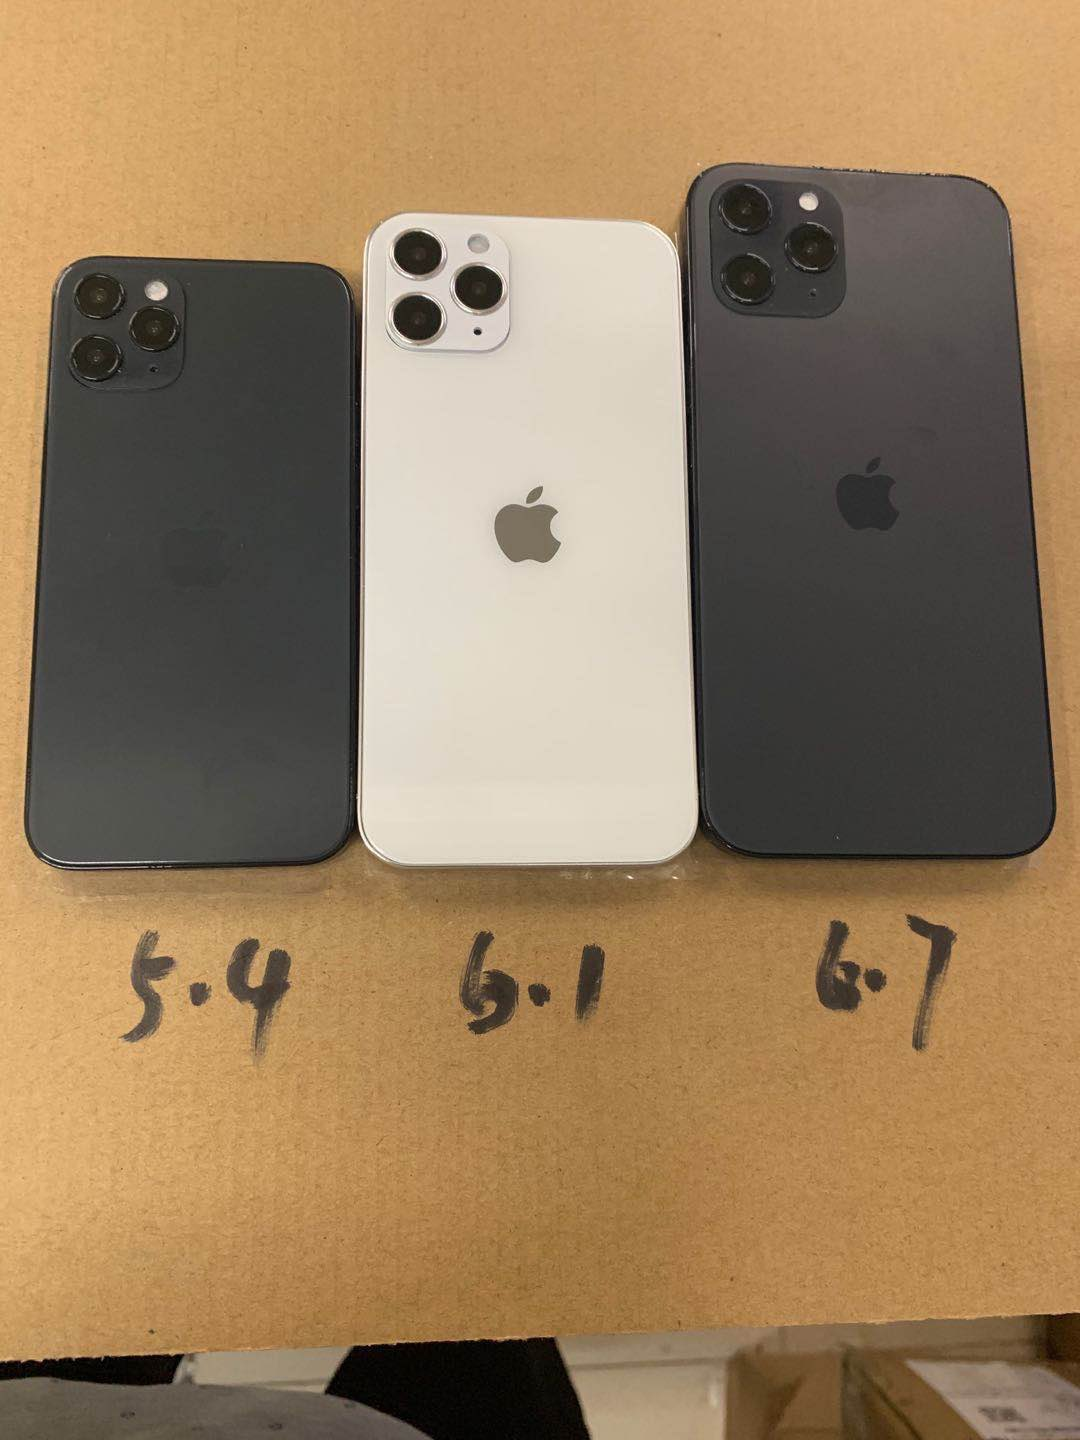 iPhone 12 dummy unit